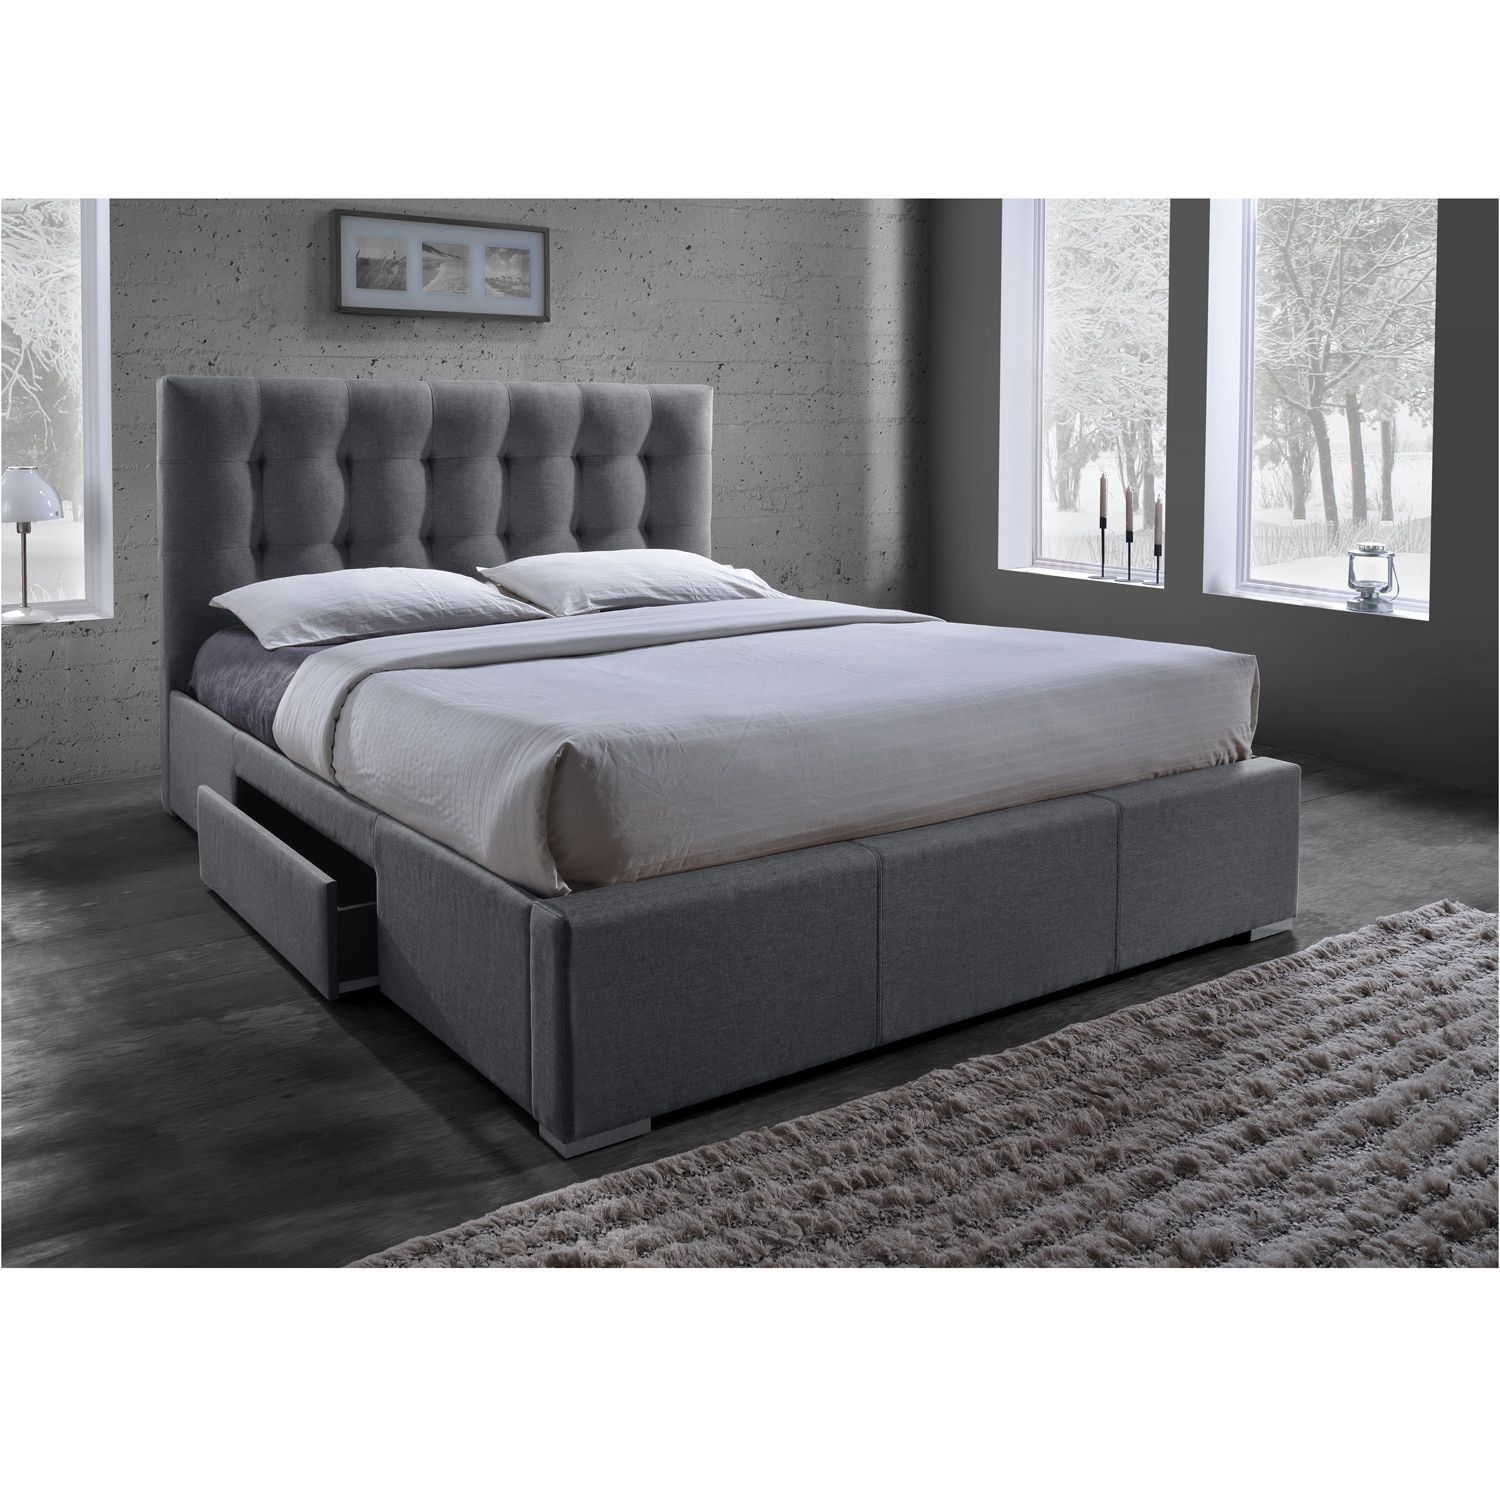 Sarter contemporary gridtufted grey fabric upholstered storage bed